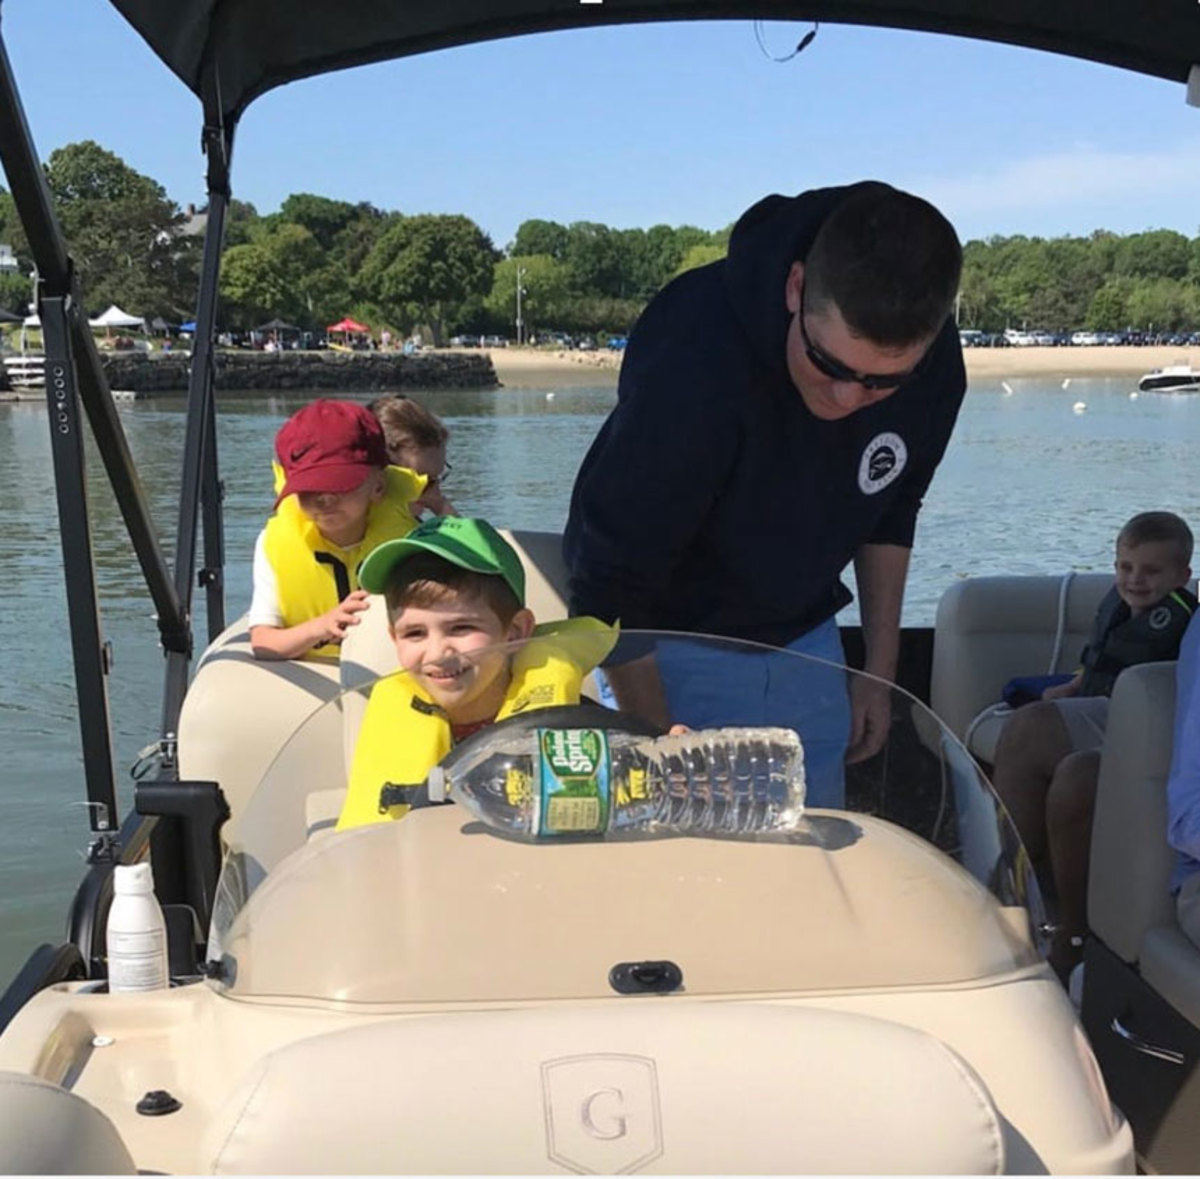 The Massachusetts Marine Trades Association is ramping up its outreach to youth with weeklong event. Photo by Explorationphotography.com